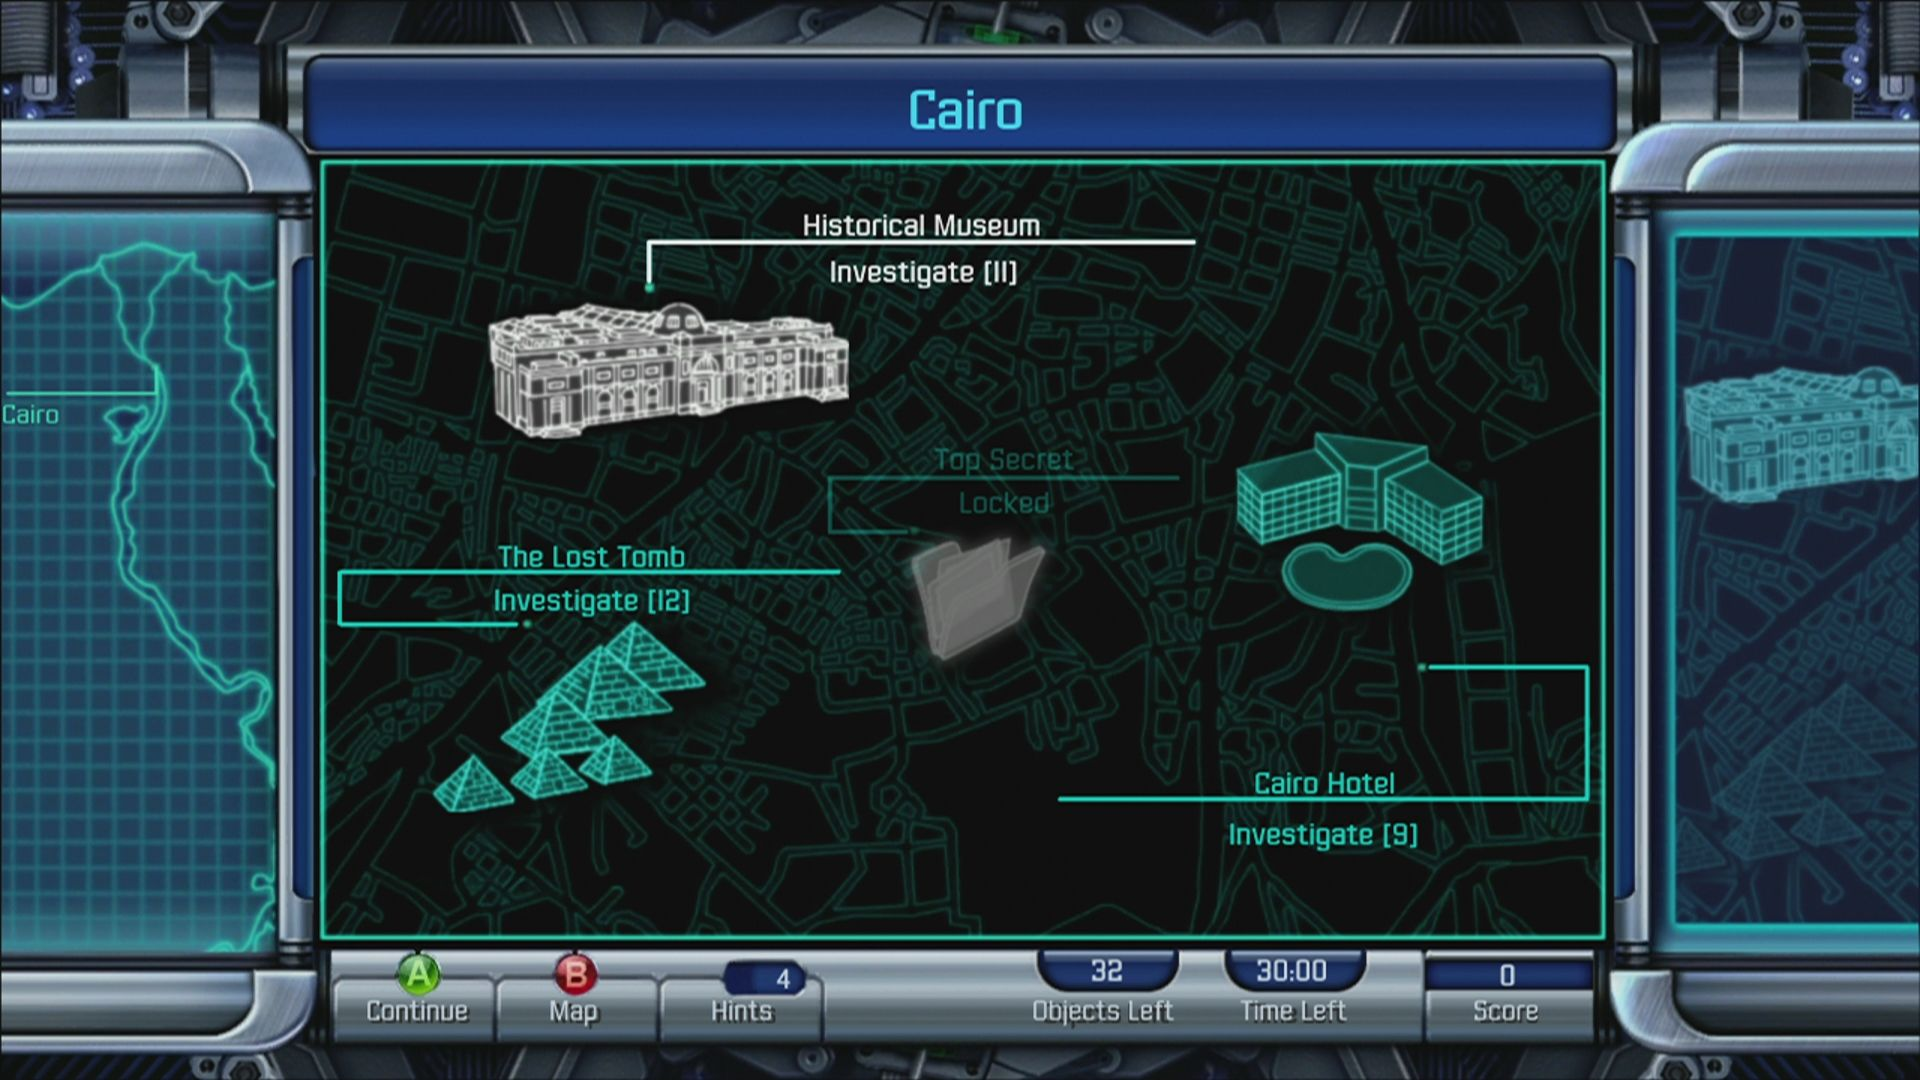 Interpol: The Trail of Dr. Chaos Xbox 360 Cairo: Historical Museum